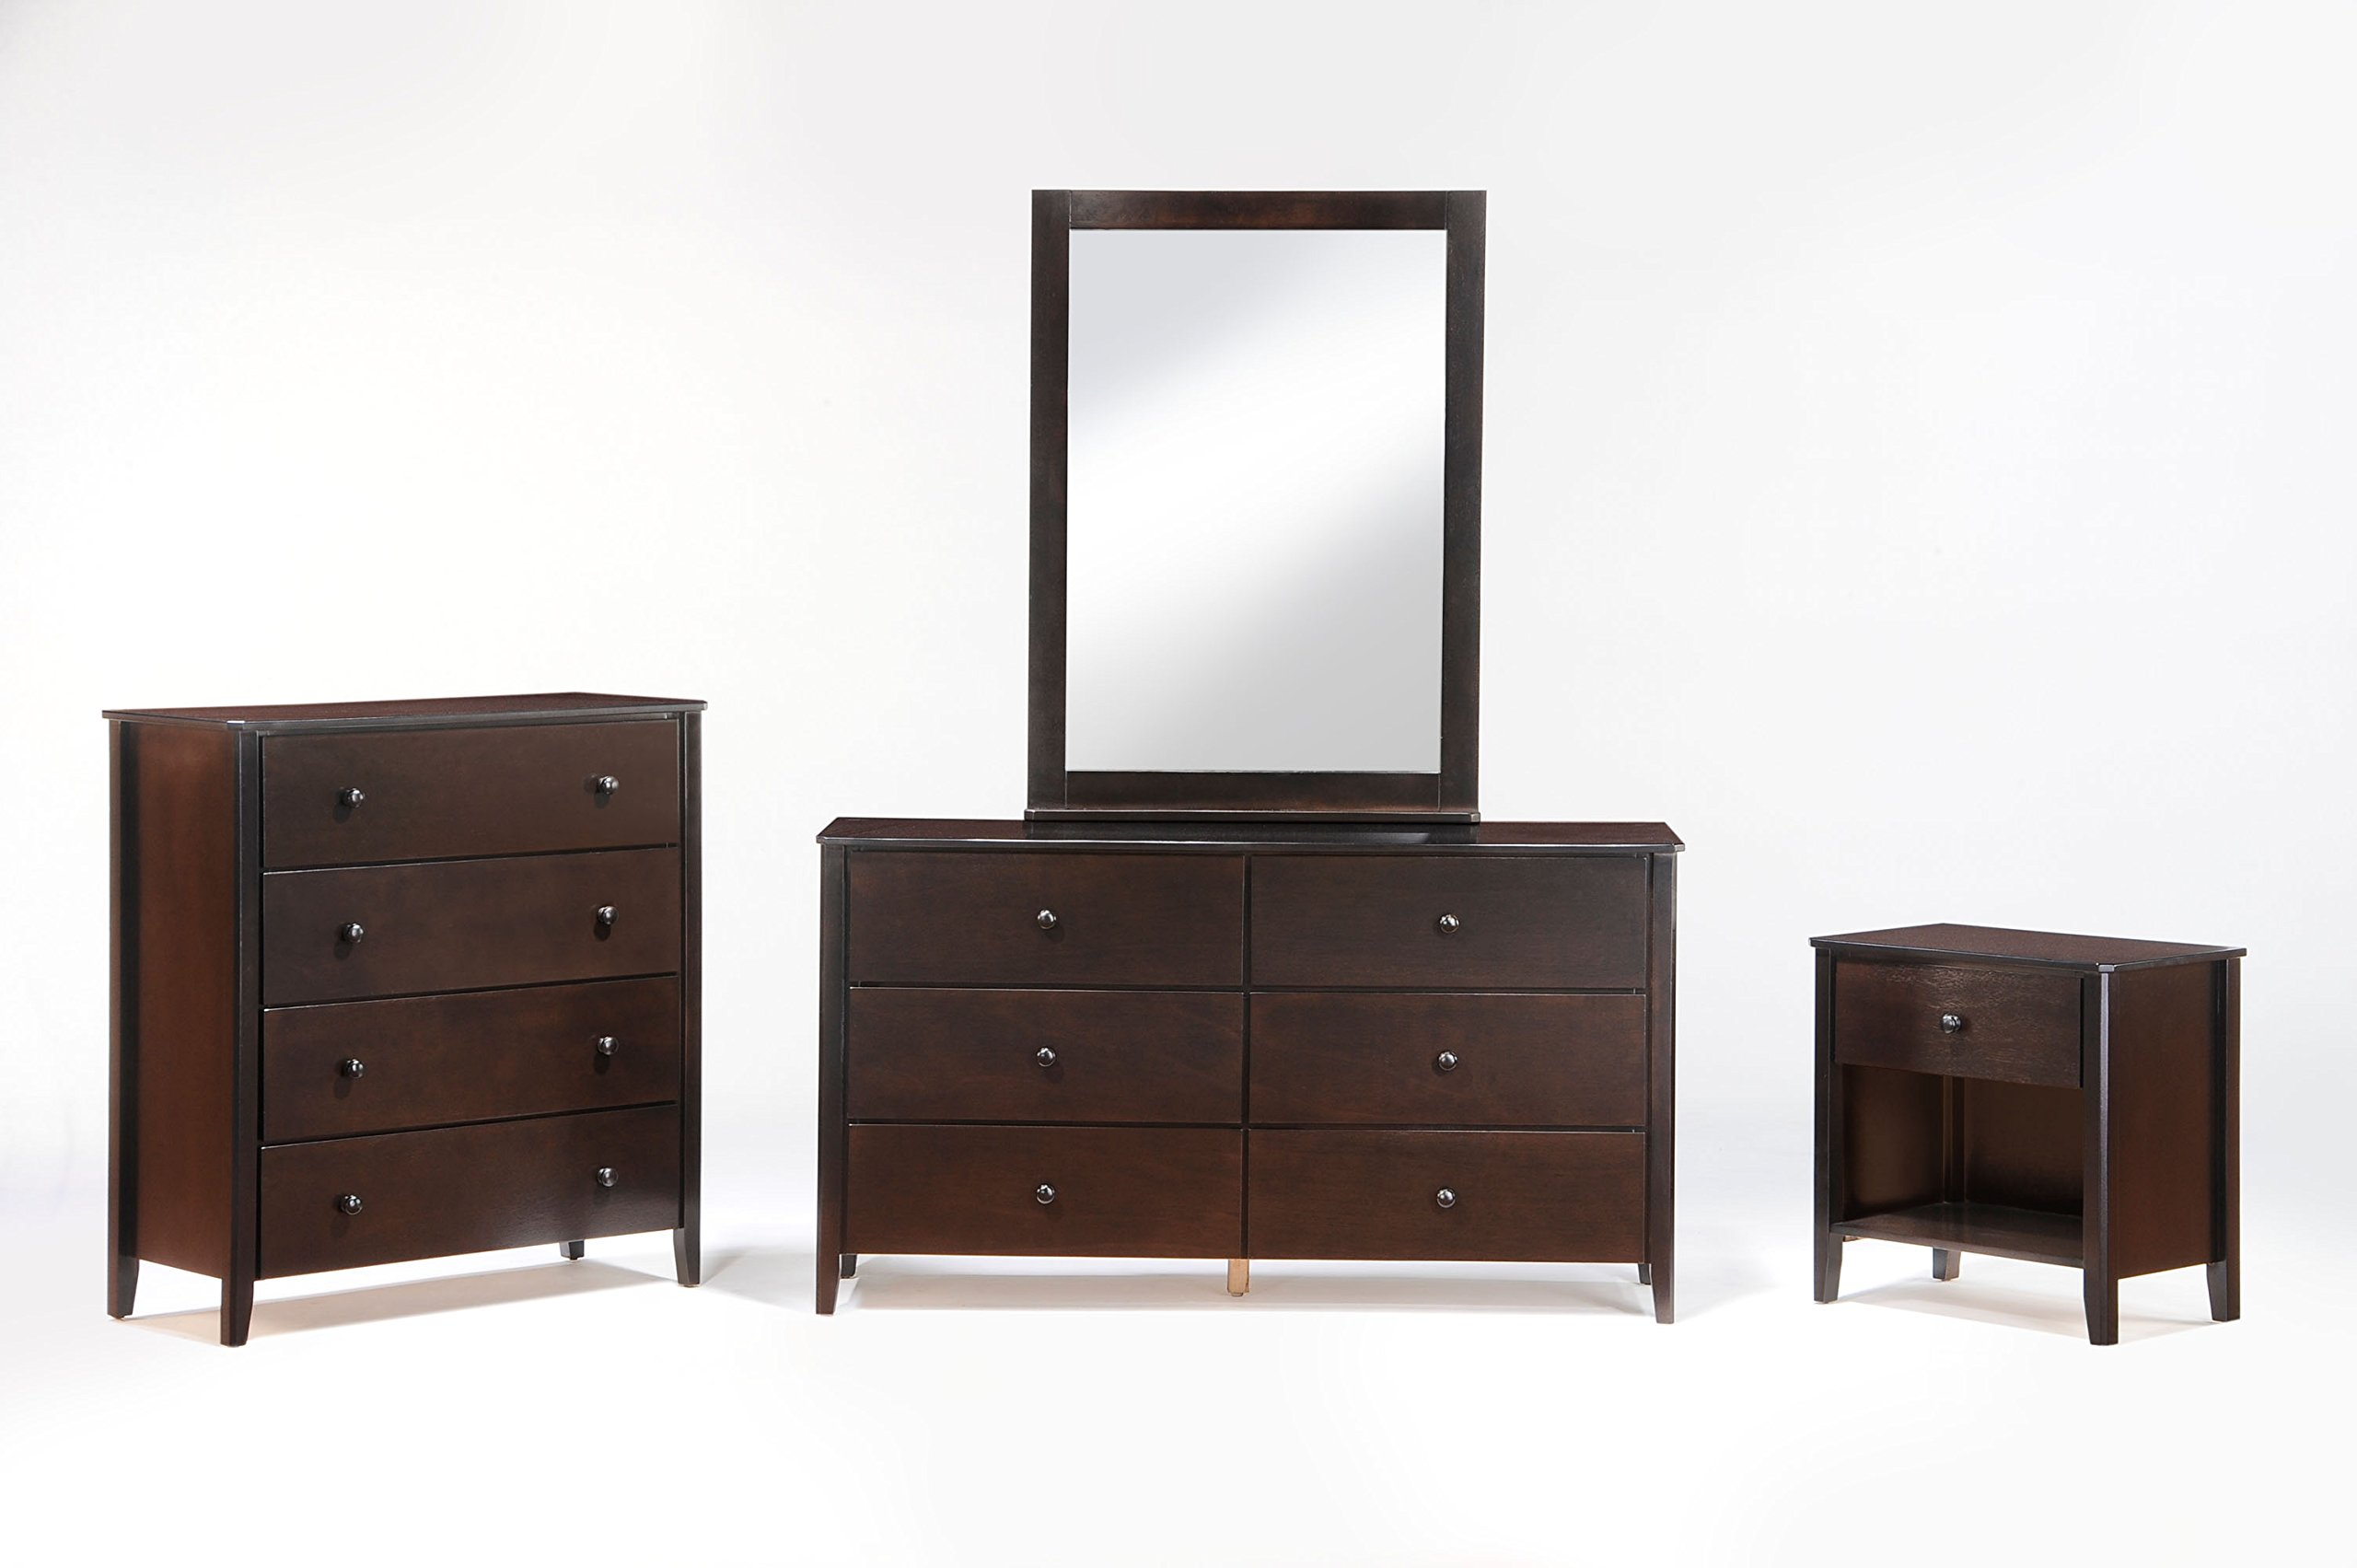 Night & Day Furniture Zest 4 Drawer Chest in Chocolate Finish by Night & Day Furniture